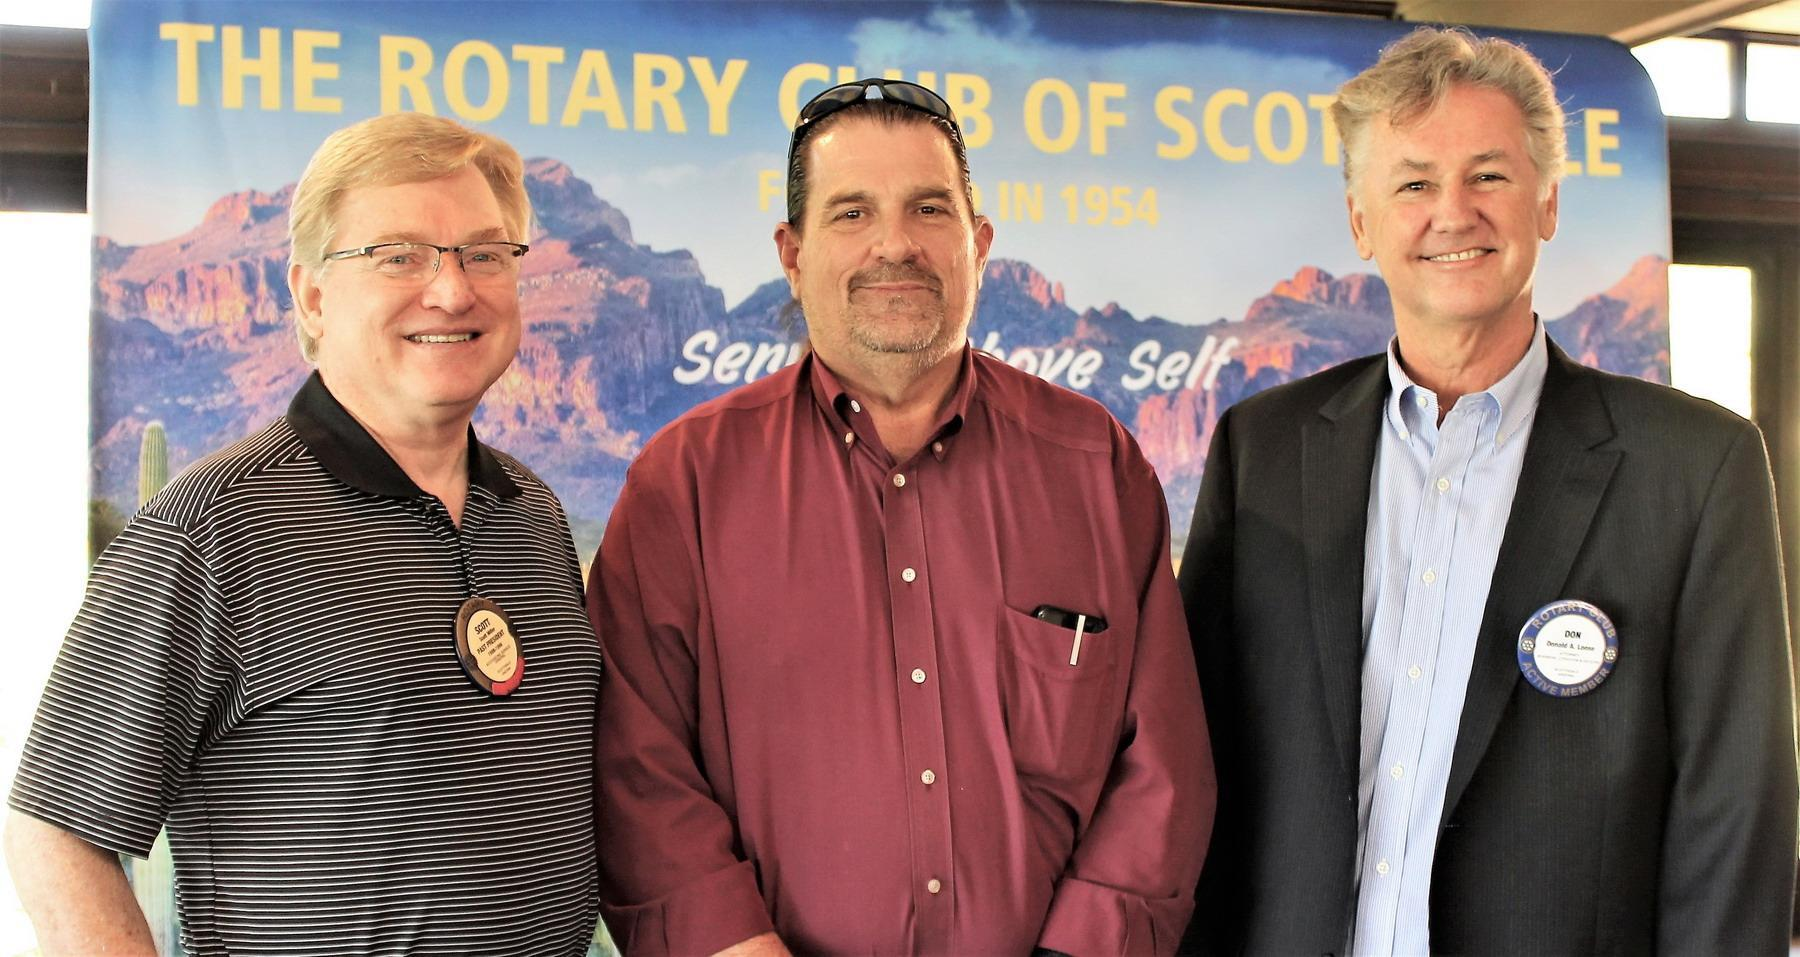 Stories | Scottsdale Rotary Club